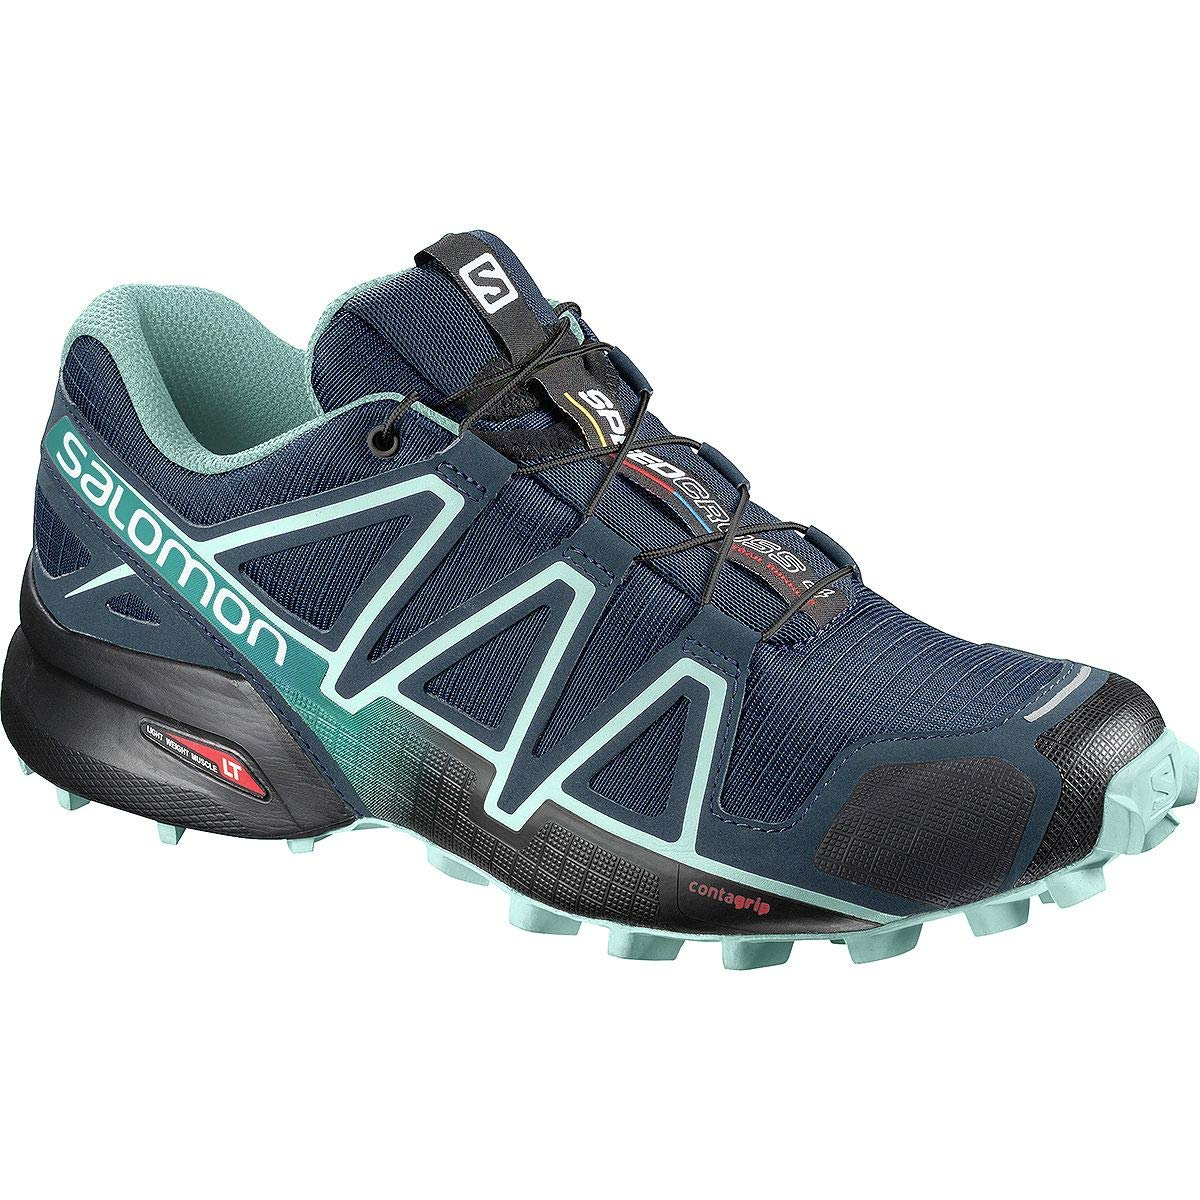 最適な価格 [サロモン] Speedcross レディース ランニング Speedcross 4 Wide Trail Running Running ランニング Shoe [並行輸入品] B07P2WXGND US-10.0/UK-8.5, RAMBUTAN:78b4dc85 --- vrpawar.in